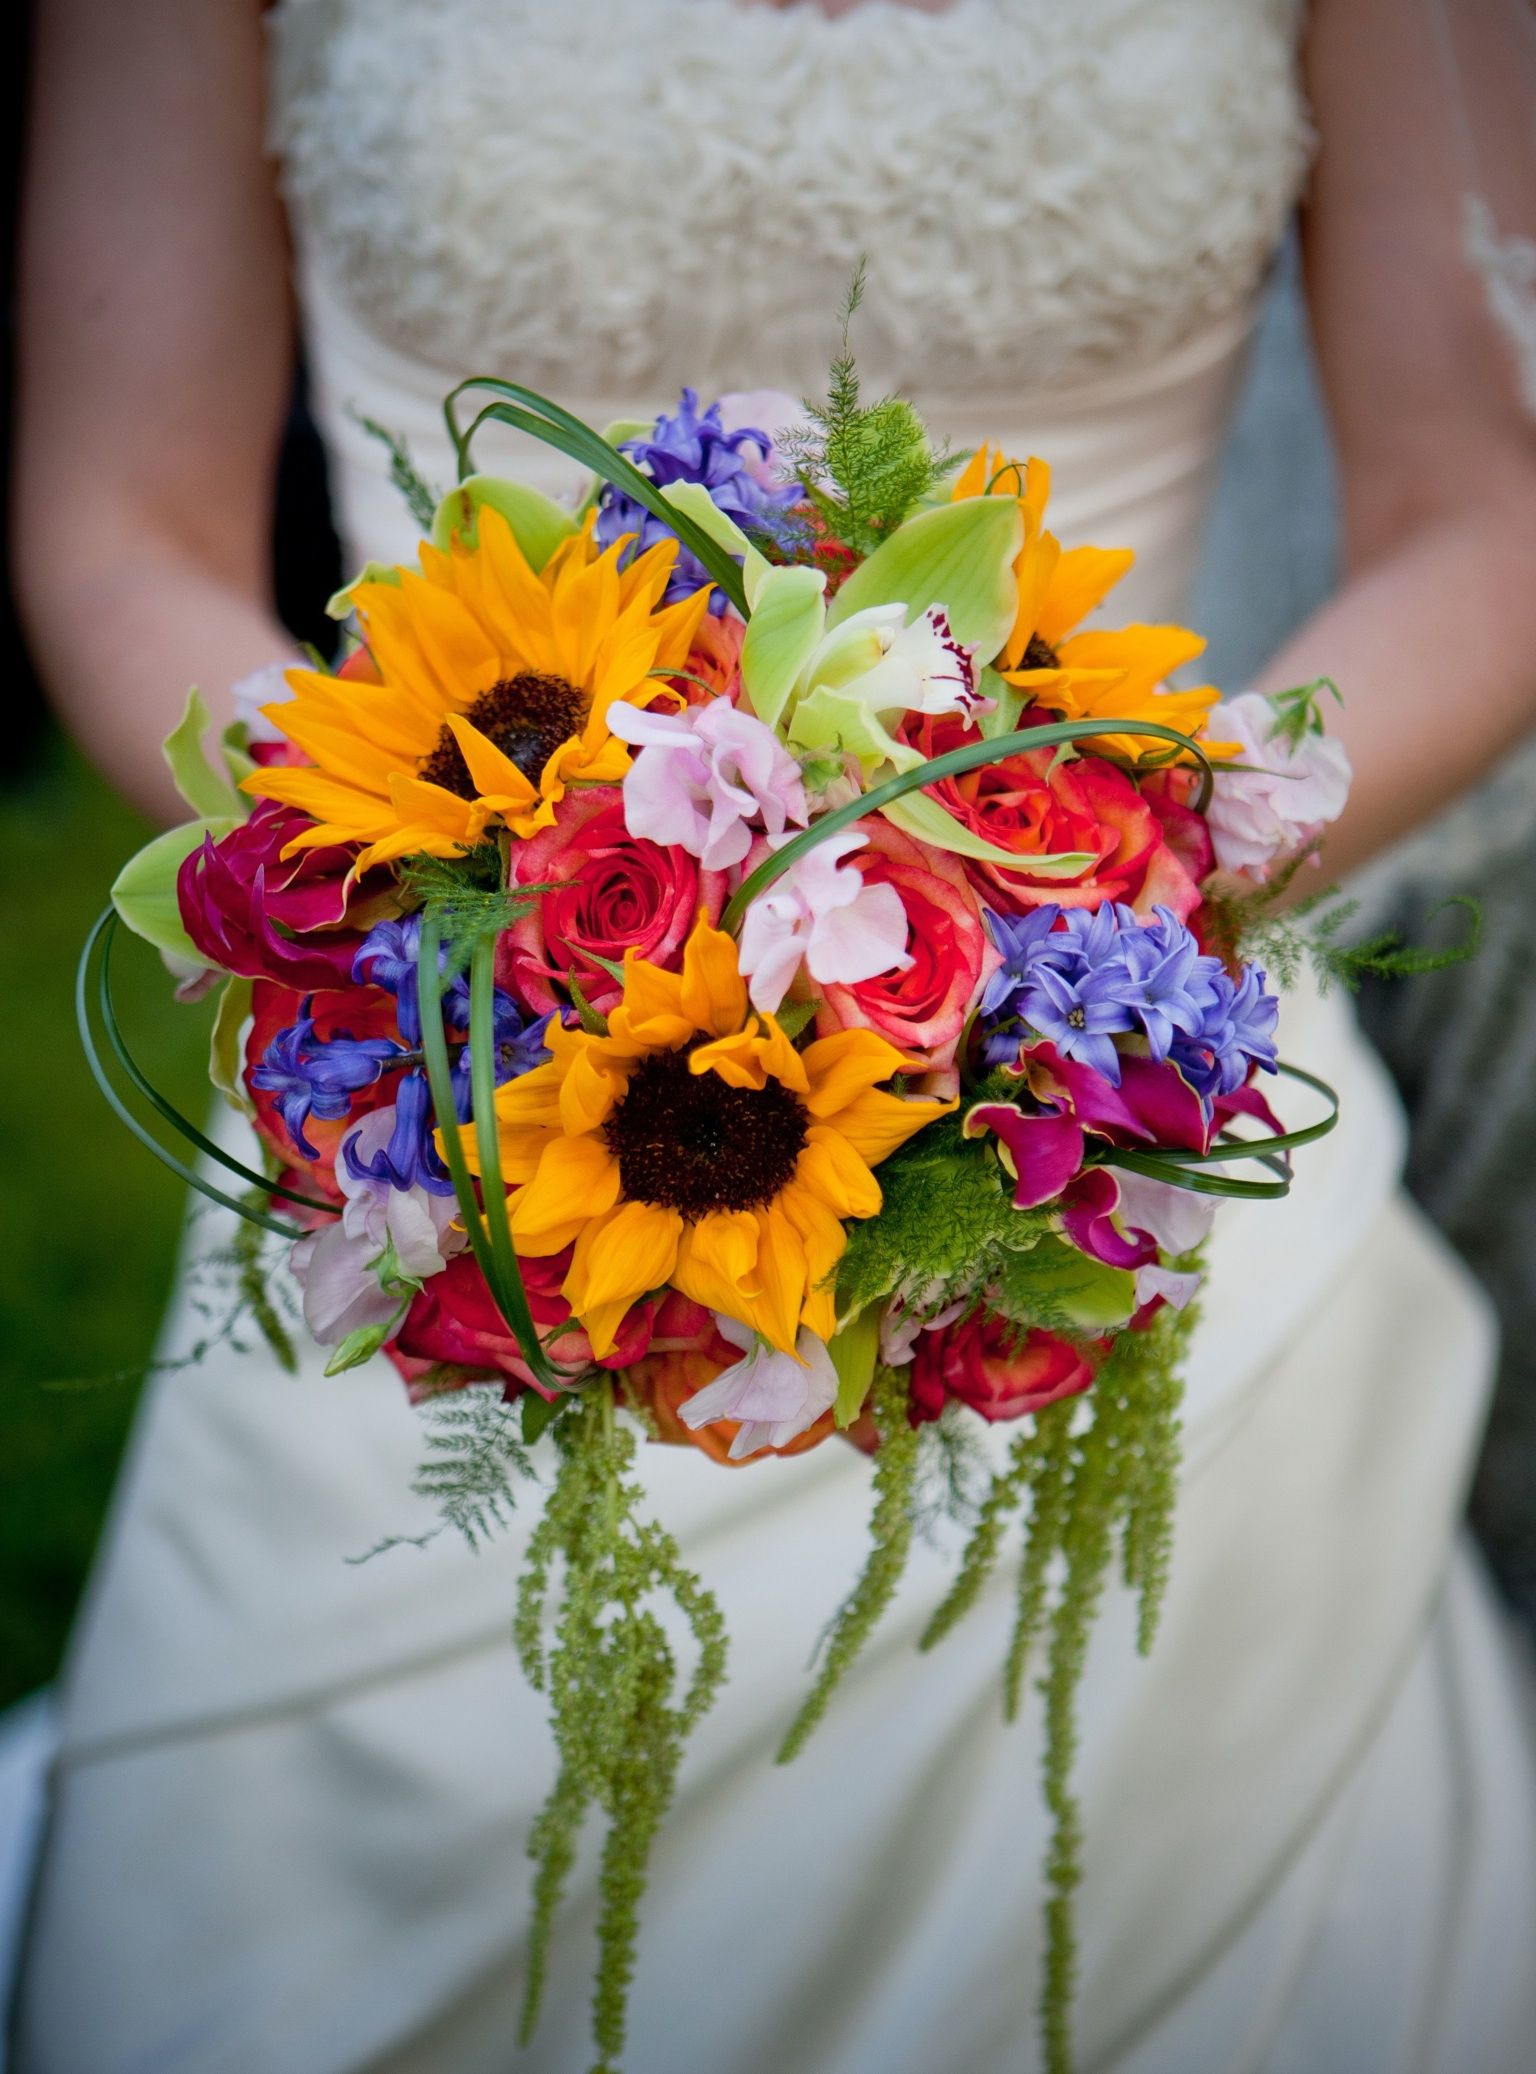 The bride will carry a round clutch bouquet of purple